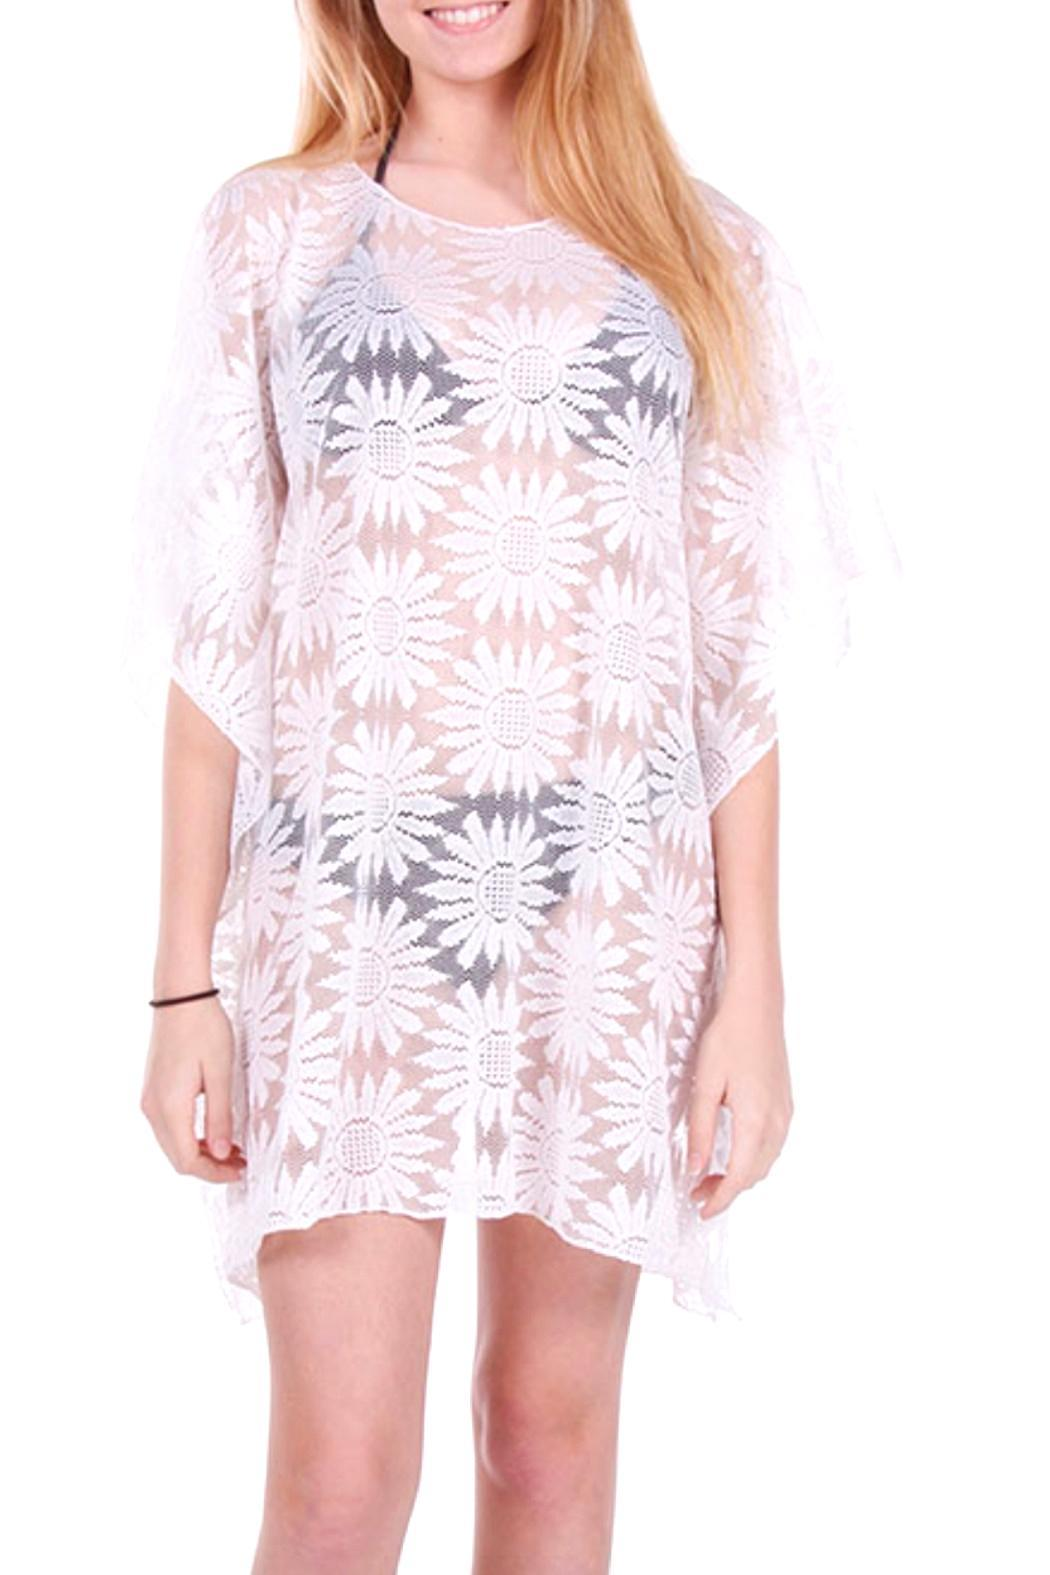 1bec309701a95 Lets Accessorize Daisy Beach Cover-Up from New York by Let's ...